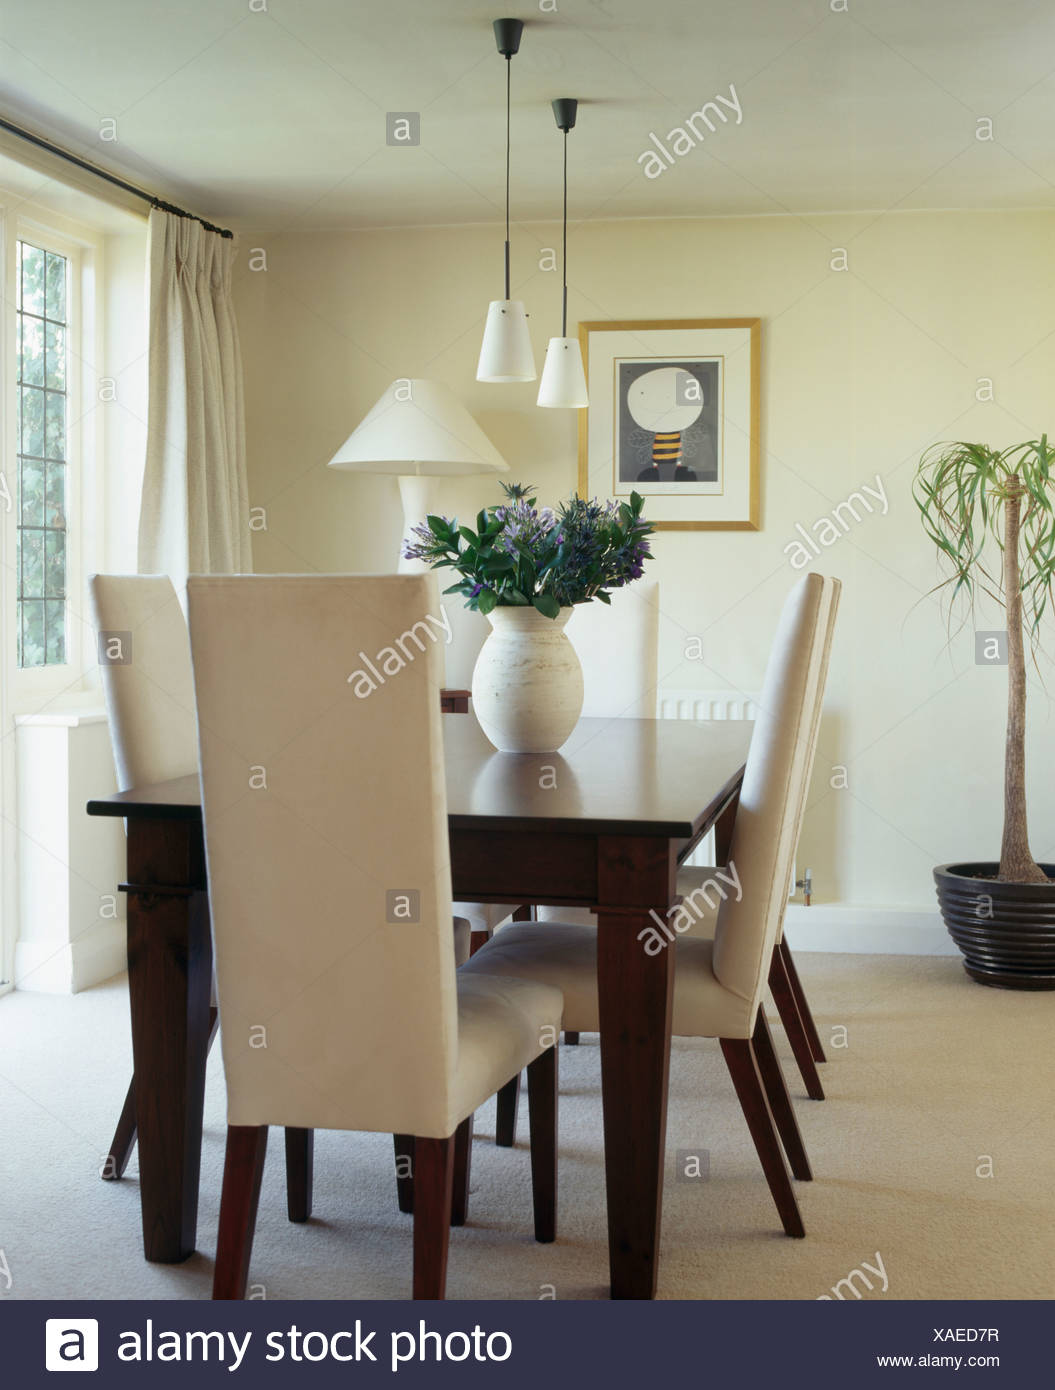 Cream Upholstered High Back Chairs And Dark Wood Table In Modern Dining Room With Carpet